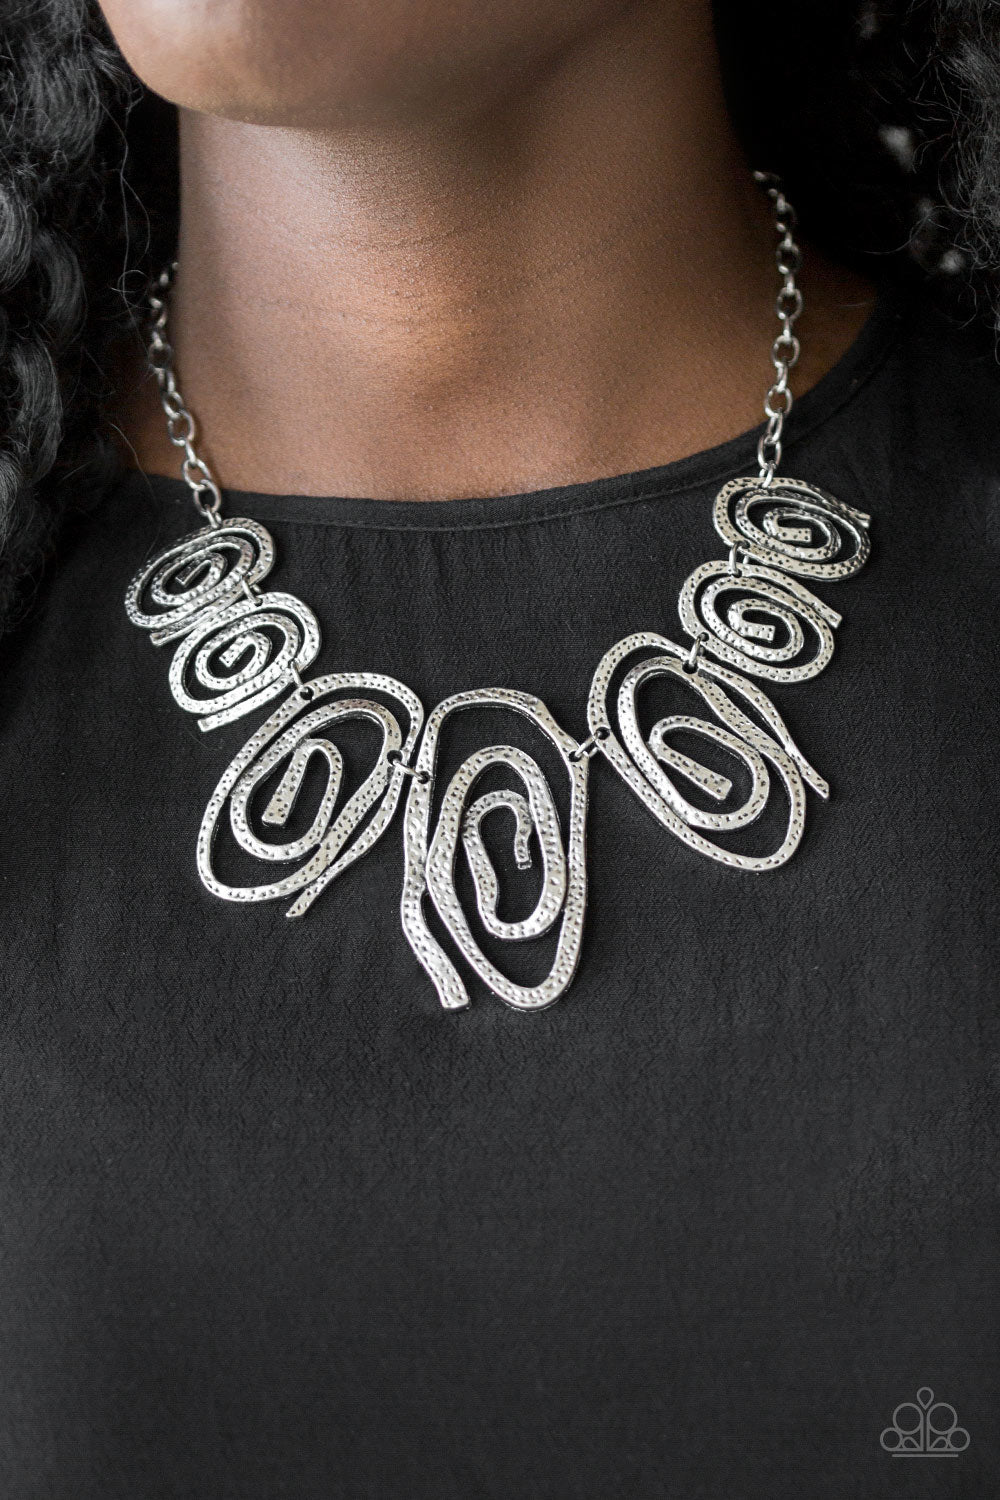 Delicately hammered in shimmery detail, warped silver frames spin into dizzying spirals. Gradually increasing in size near the center, the asymmetrical frames link below the collar for a bold tribal inspired look. Features an adjustable clasp closure.  Sold as one individual necklace. Includes one pair of matching earrings.  Always nickel and lead free.